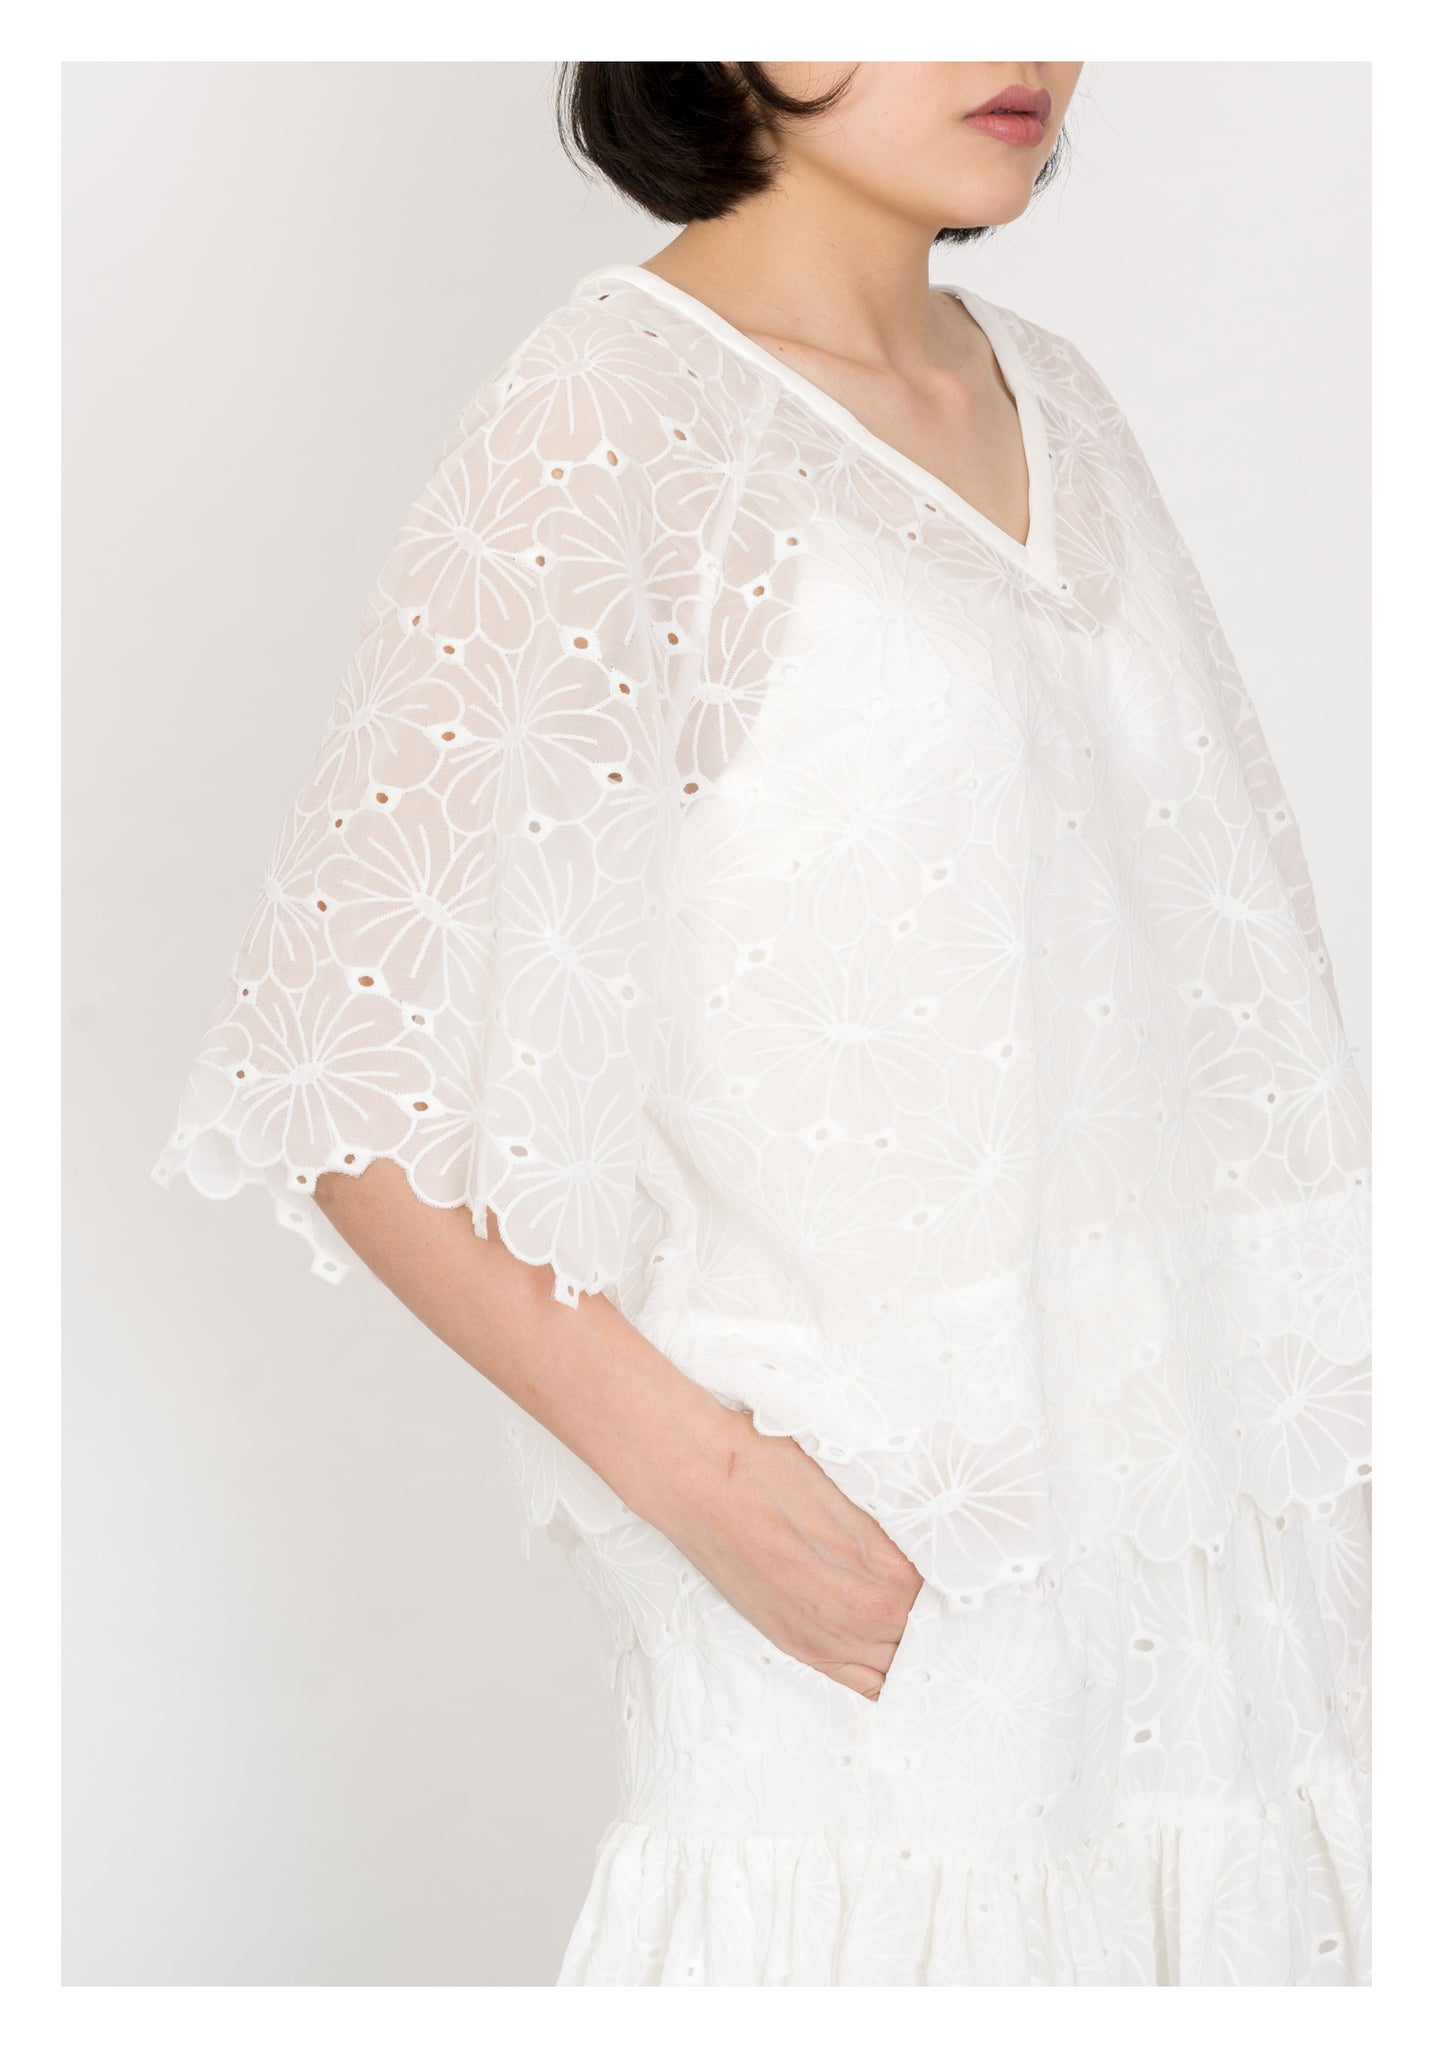 Kate V Neck Blouse White - whoami